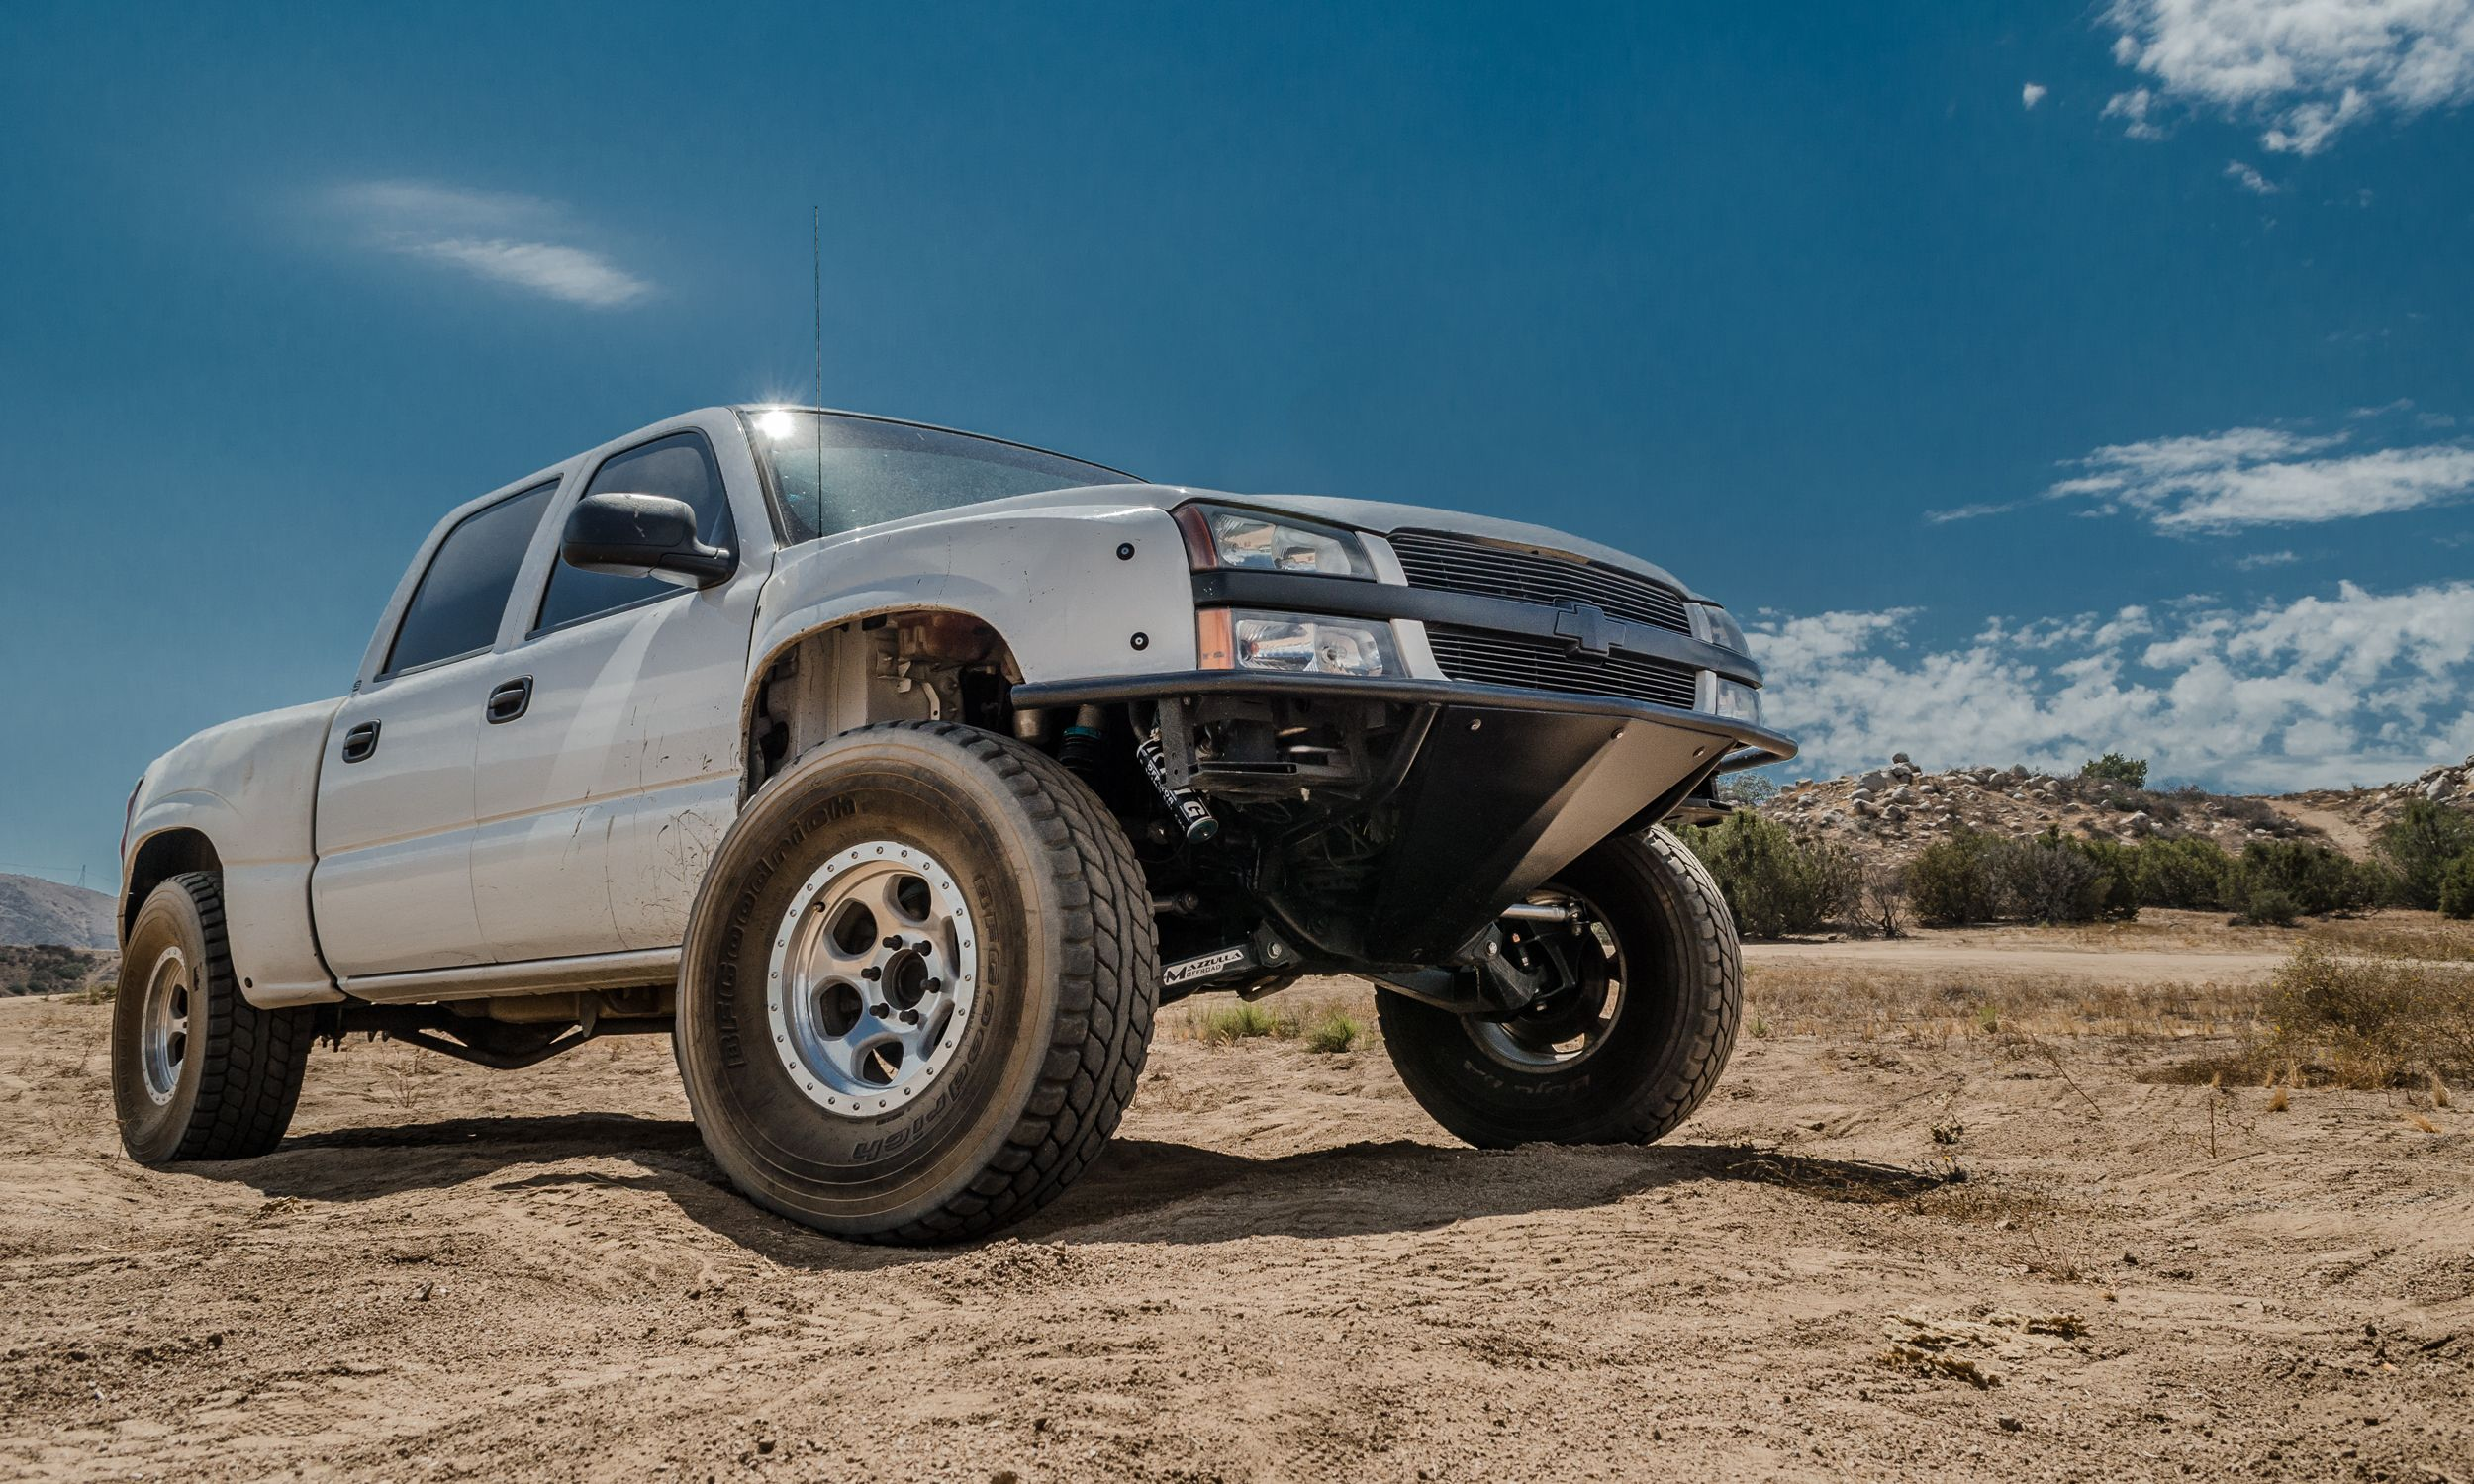 Mazzulla Offroad Suspensionchevy Gmc 99 06 1500 Offroad Monster